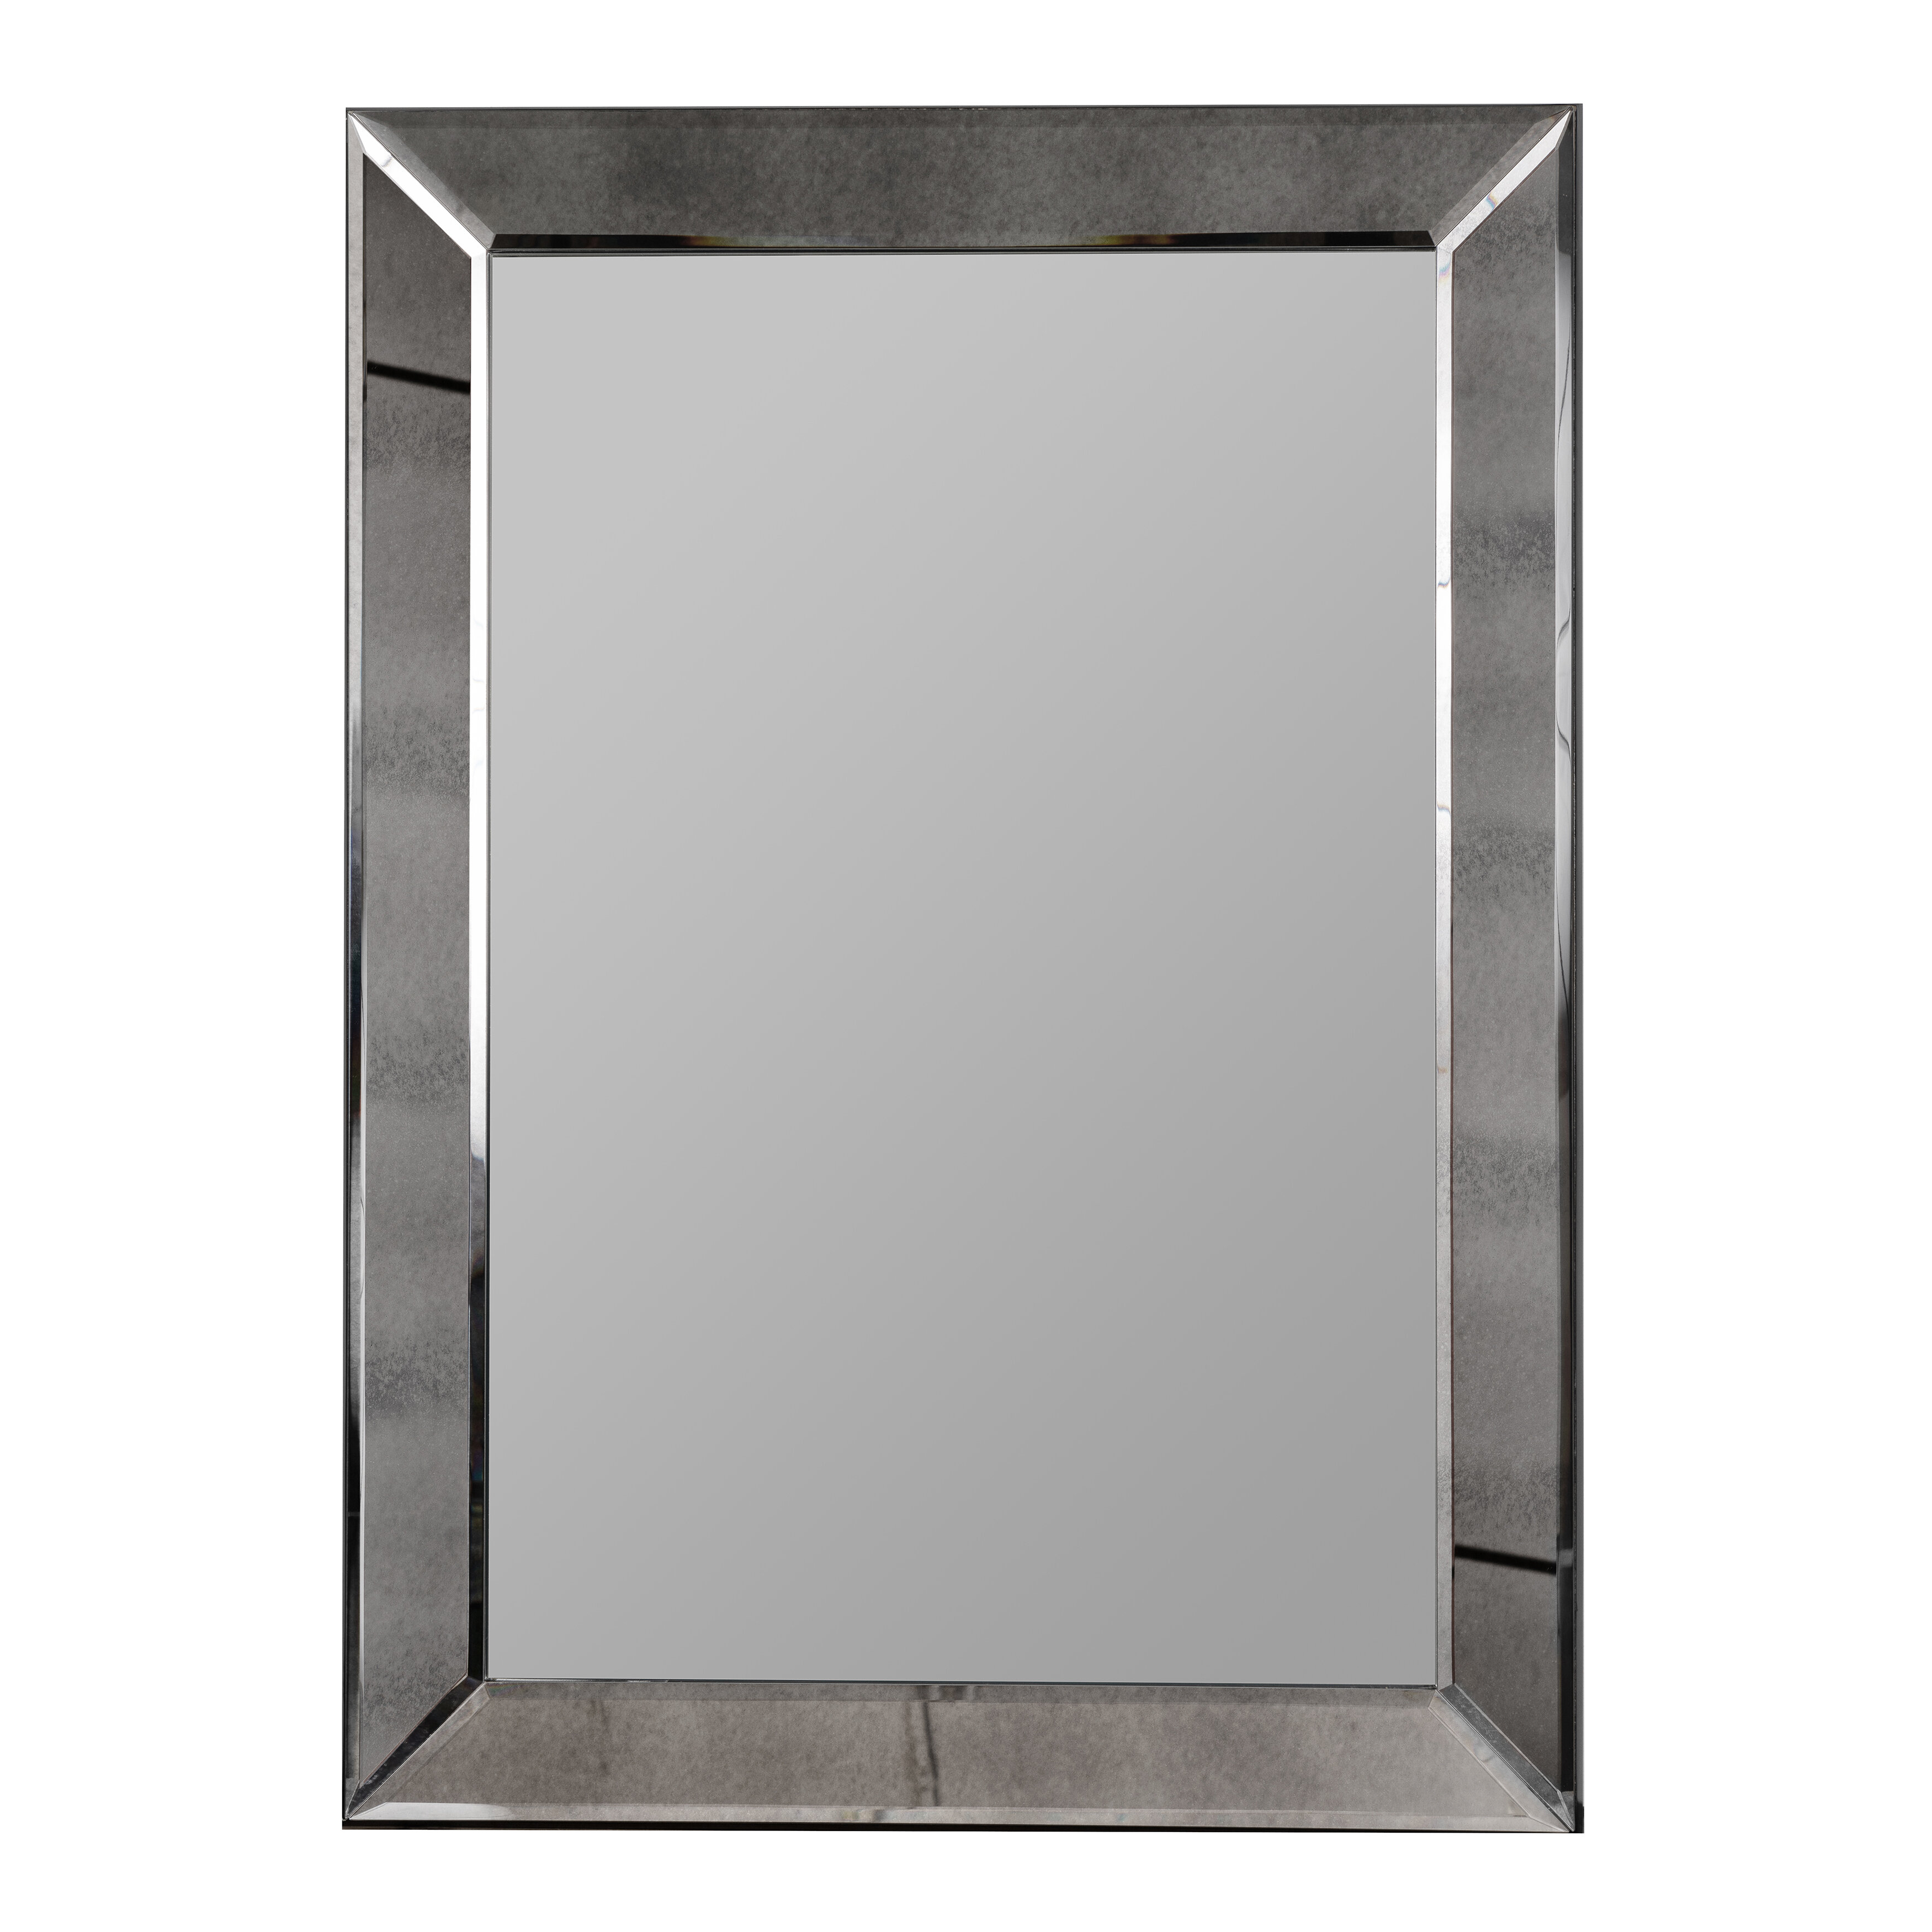 Modern & Contemporary Rustic Mirror | Allmodern With Regard To Bem Decorative Wall Mirrors (View 21 of 30)